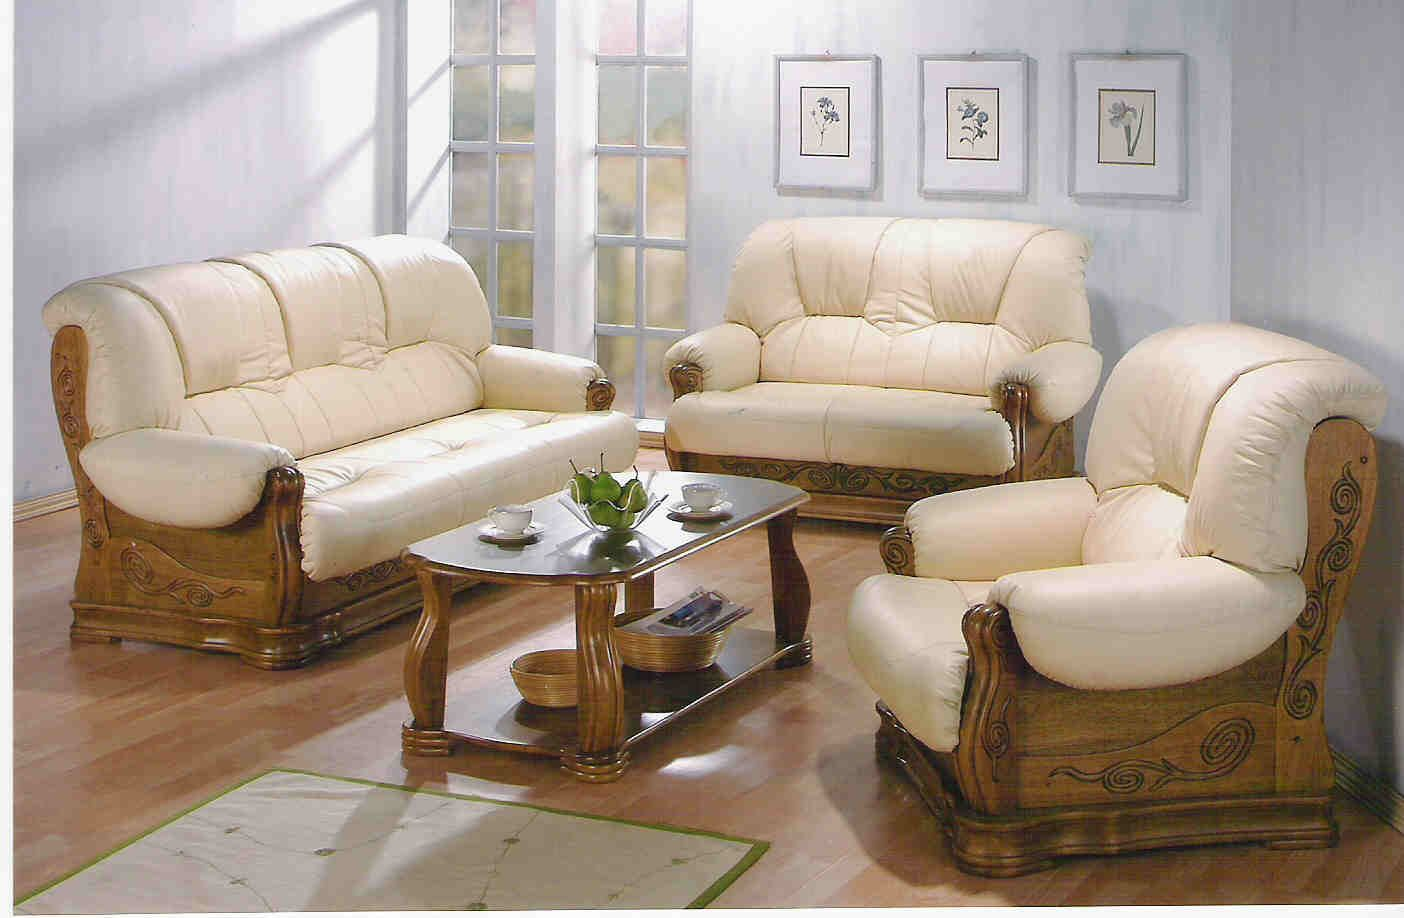 Sofa Sets For Living Room In Malaysia Sofa Set Designs Wooden Sofa Set Sofa Design